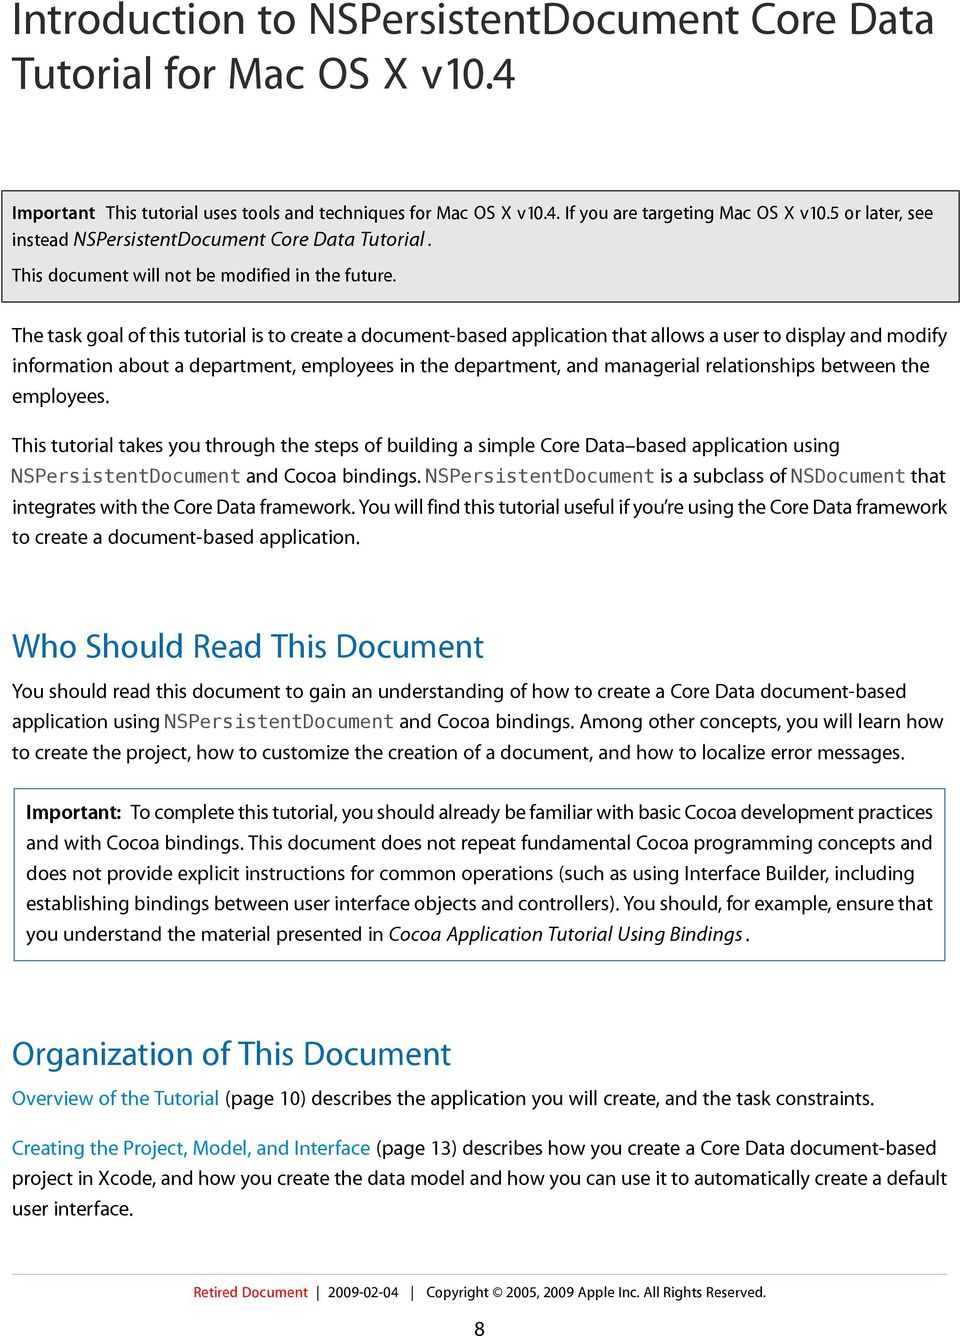 The task goal of this tutorial is to create a document-based application that allows a user to display and modify information about a department, employees in the department, and managerial